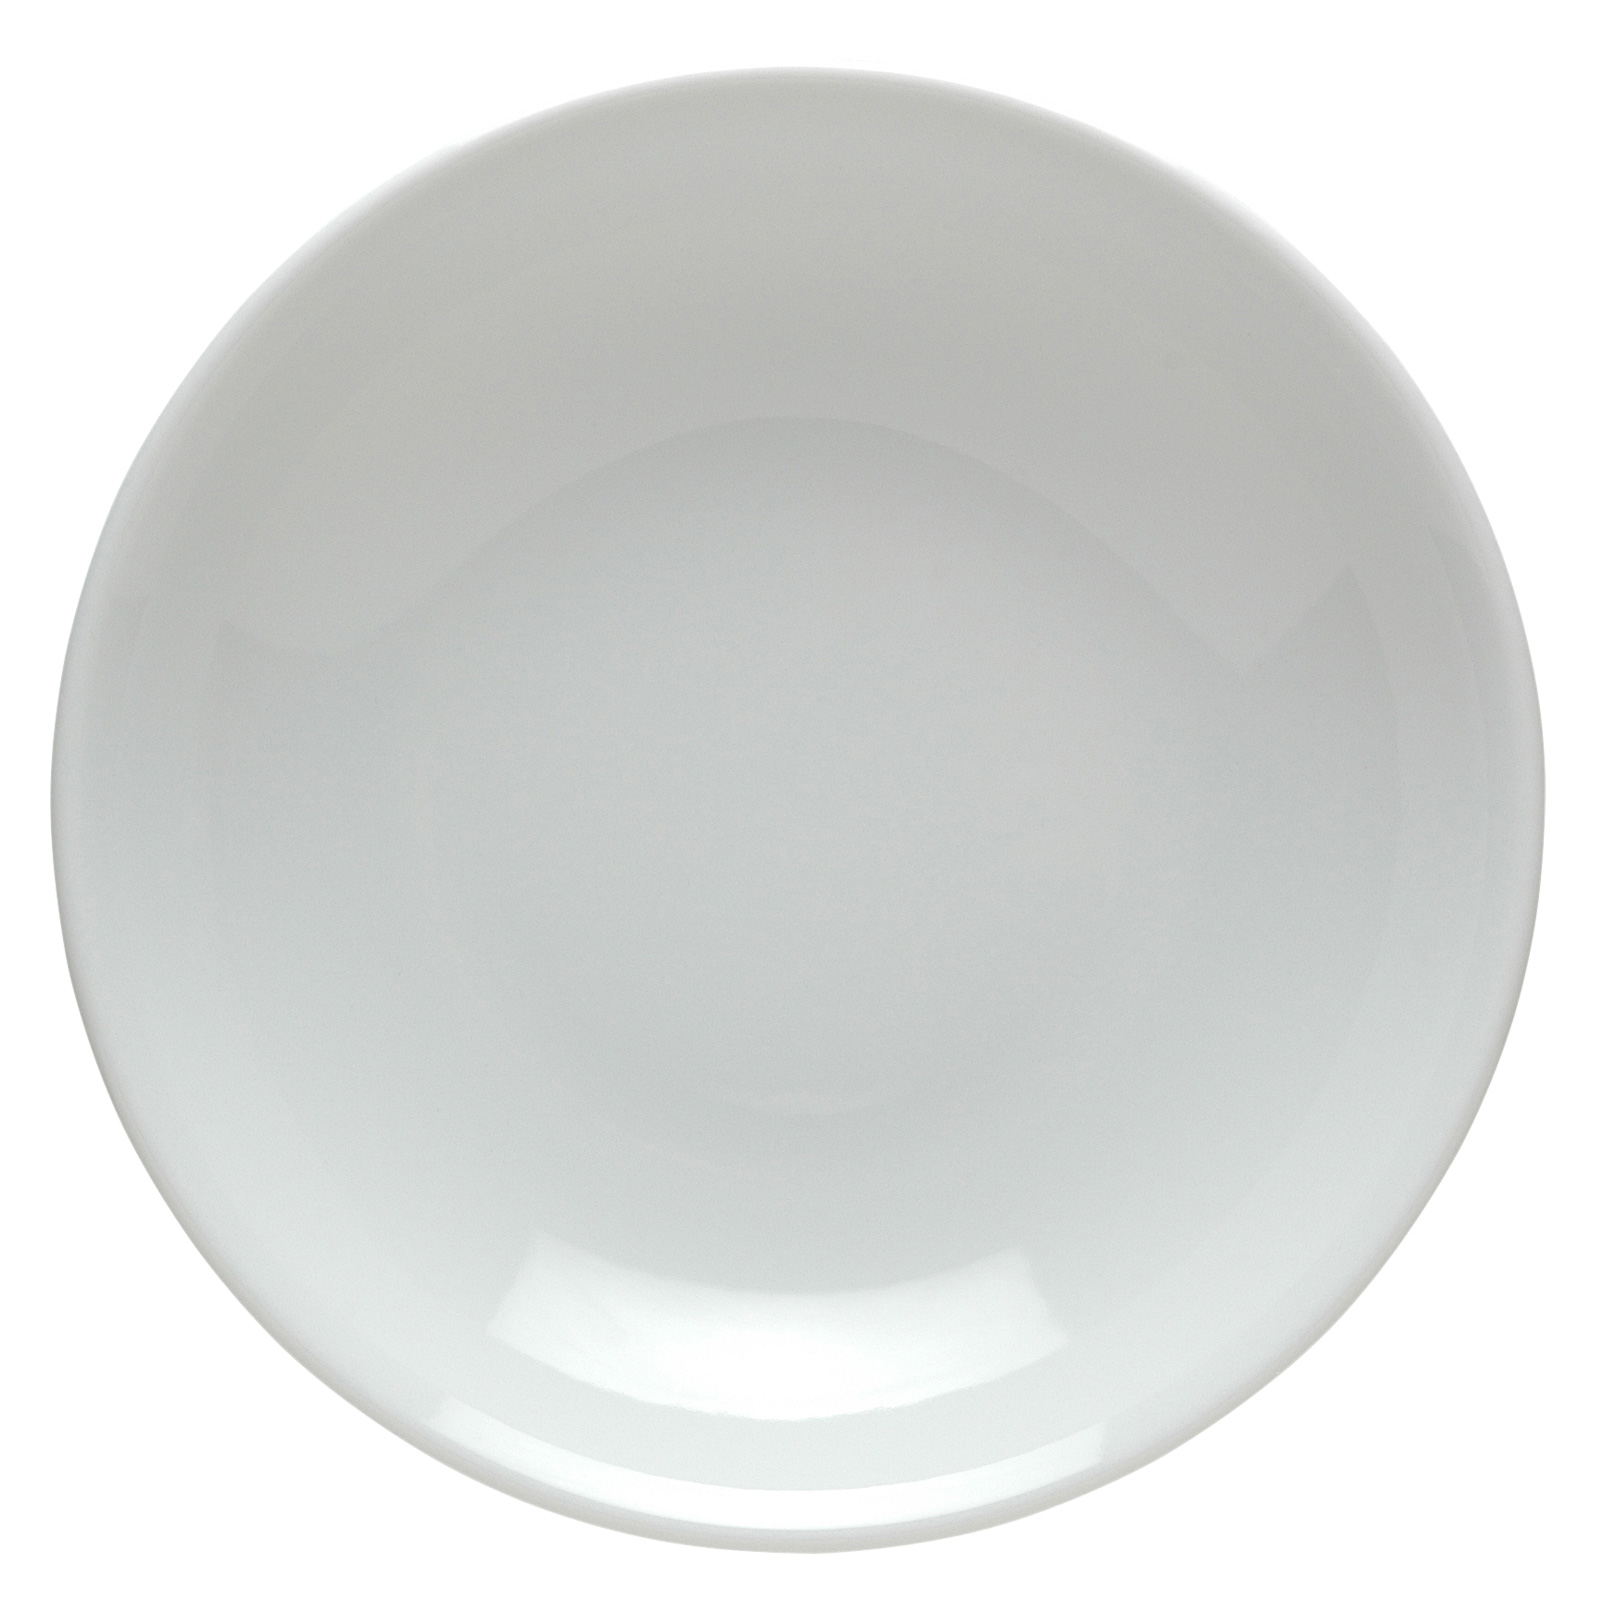 Set of 12 Hotel Flat Plates Large by Lubiana